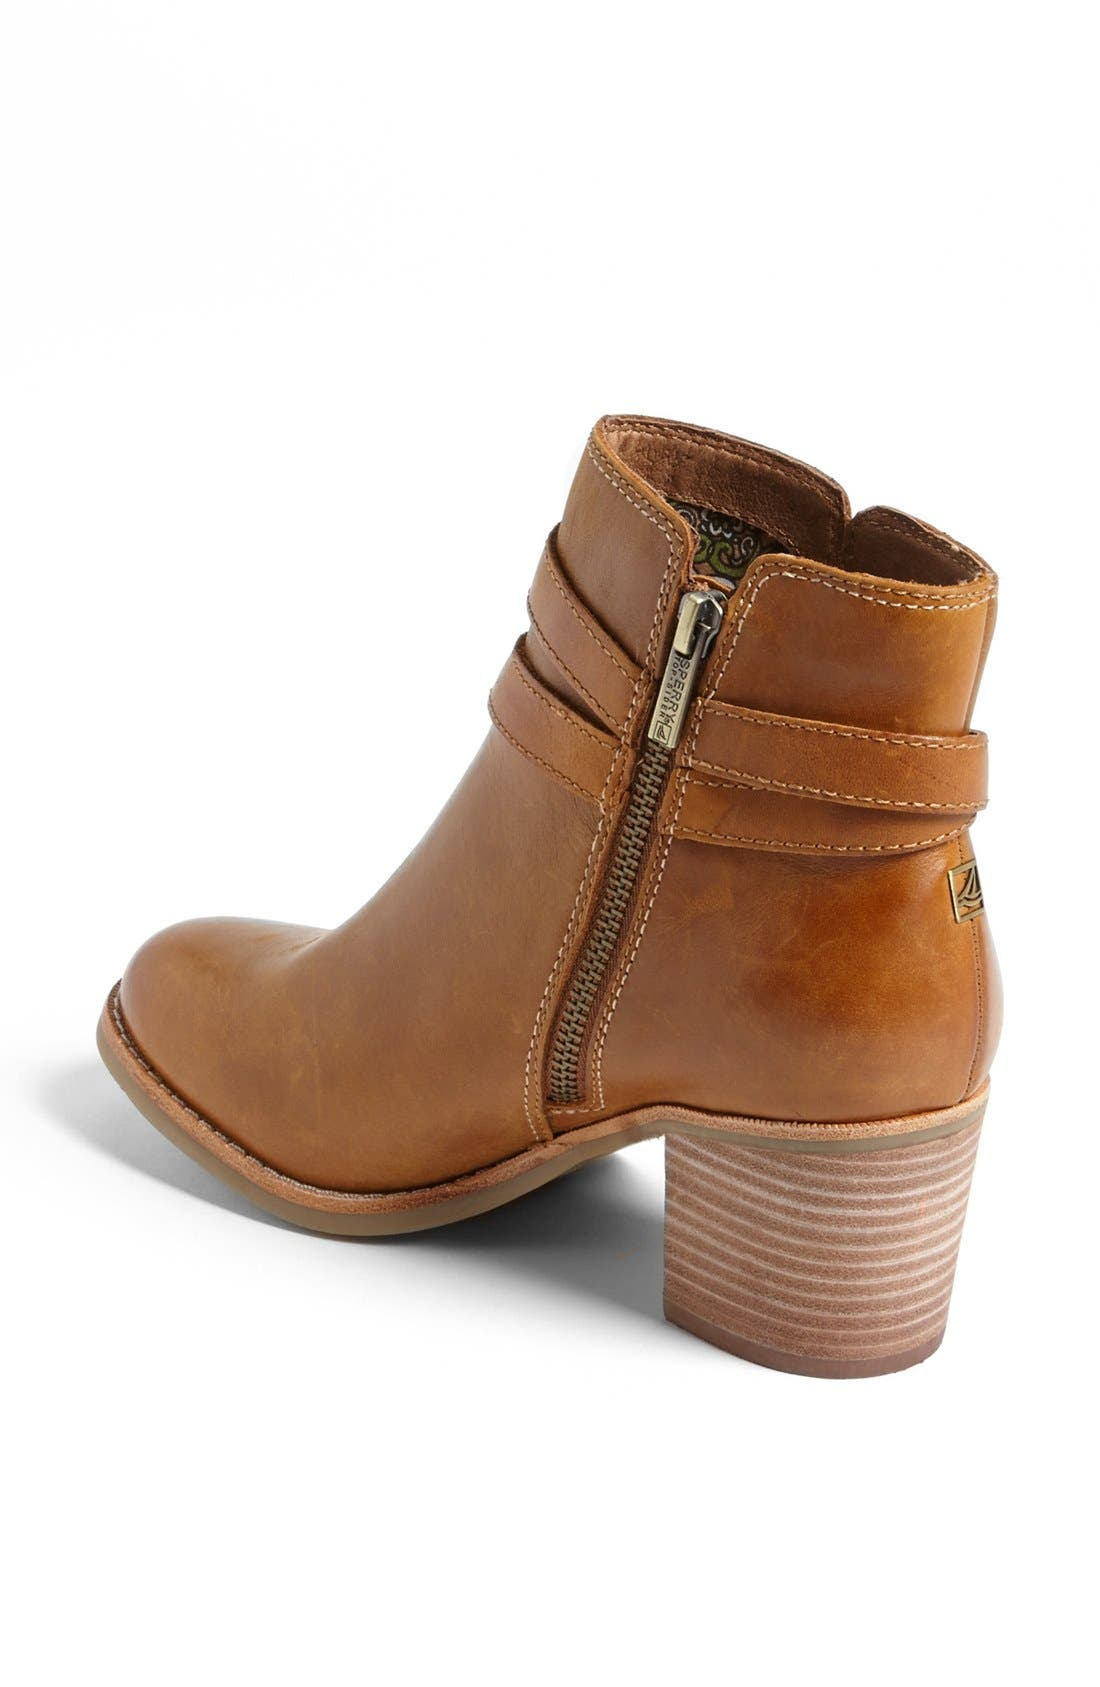 Top-Sider<sup>®</sup> 'Chelton' Bootie,                             Alternate thumbnail 2, color,                             Tan